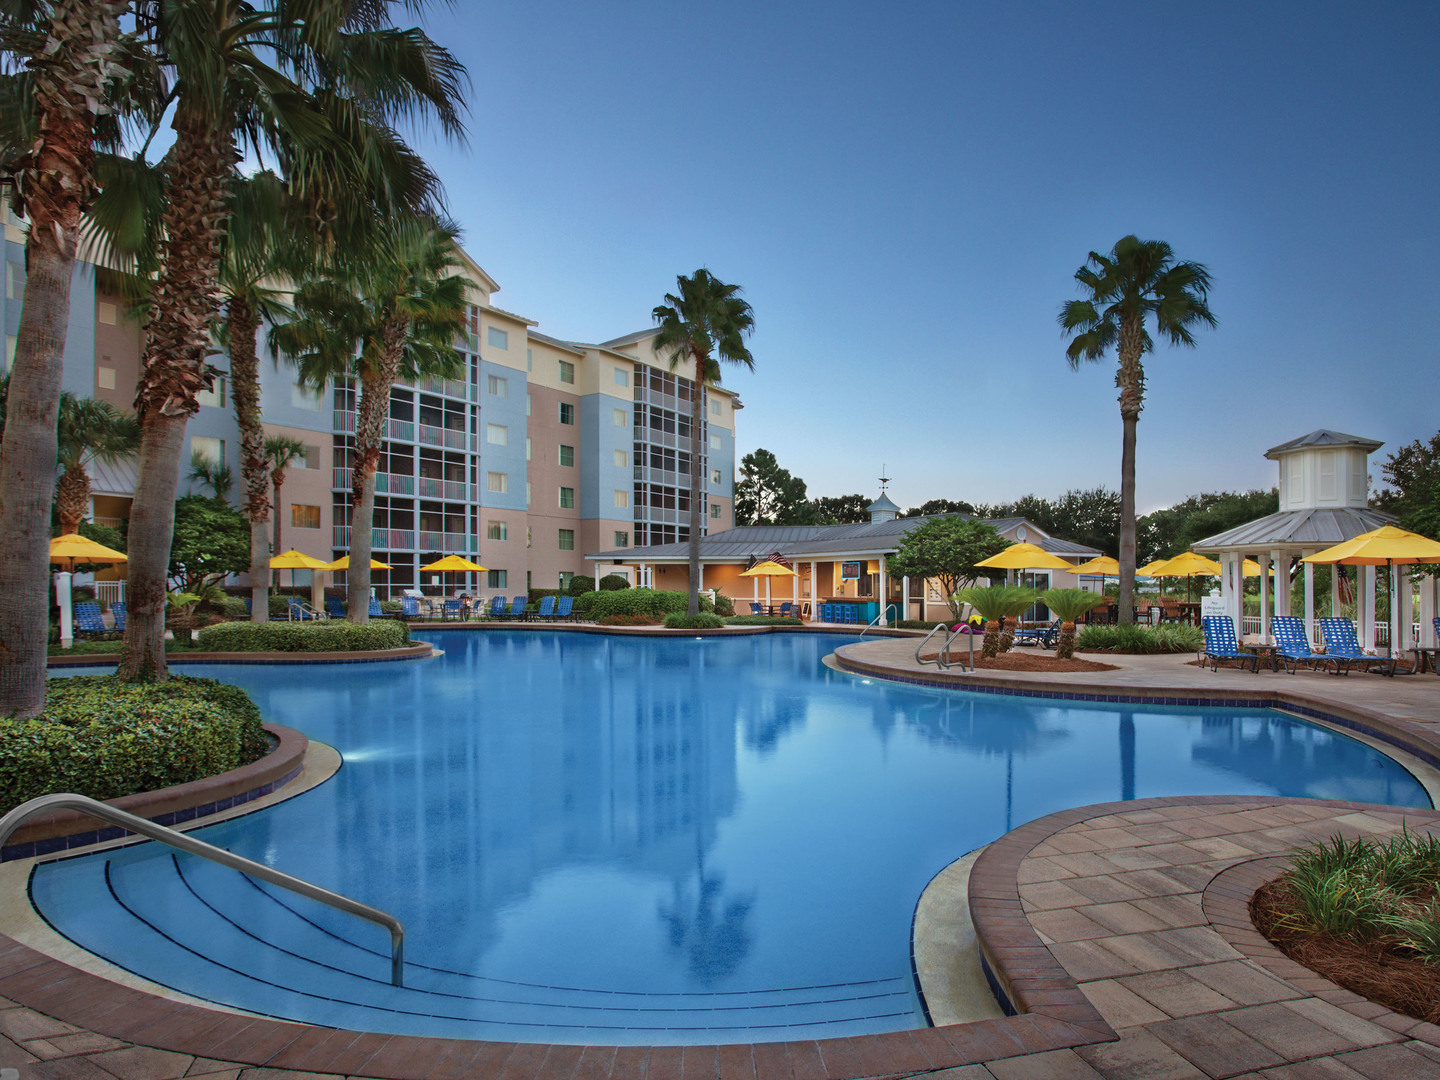 Marriott's Legends Edge at Bay Point Lagoon Pool. Marriott's Legends Edge at Bay Point is located in Panama City, Florida United States.